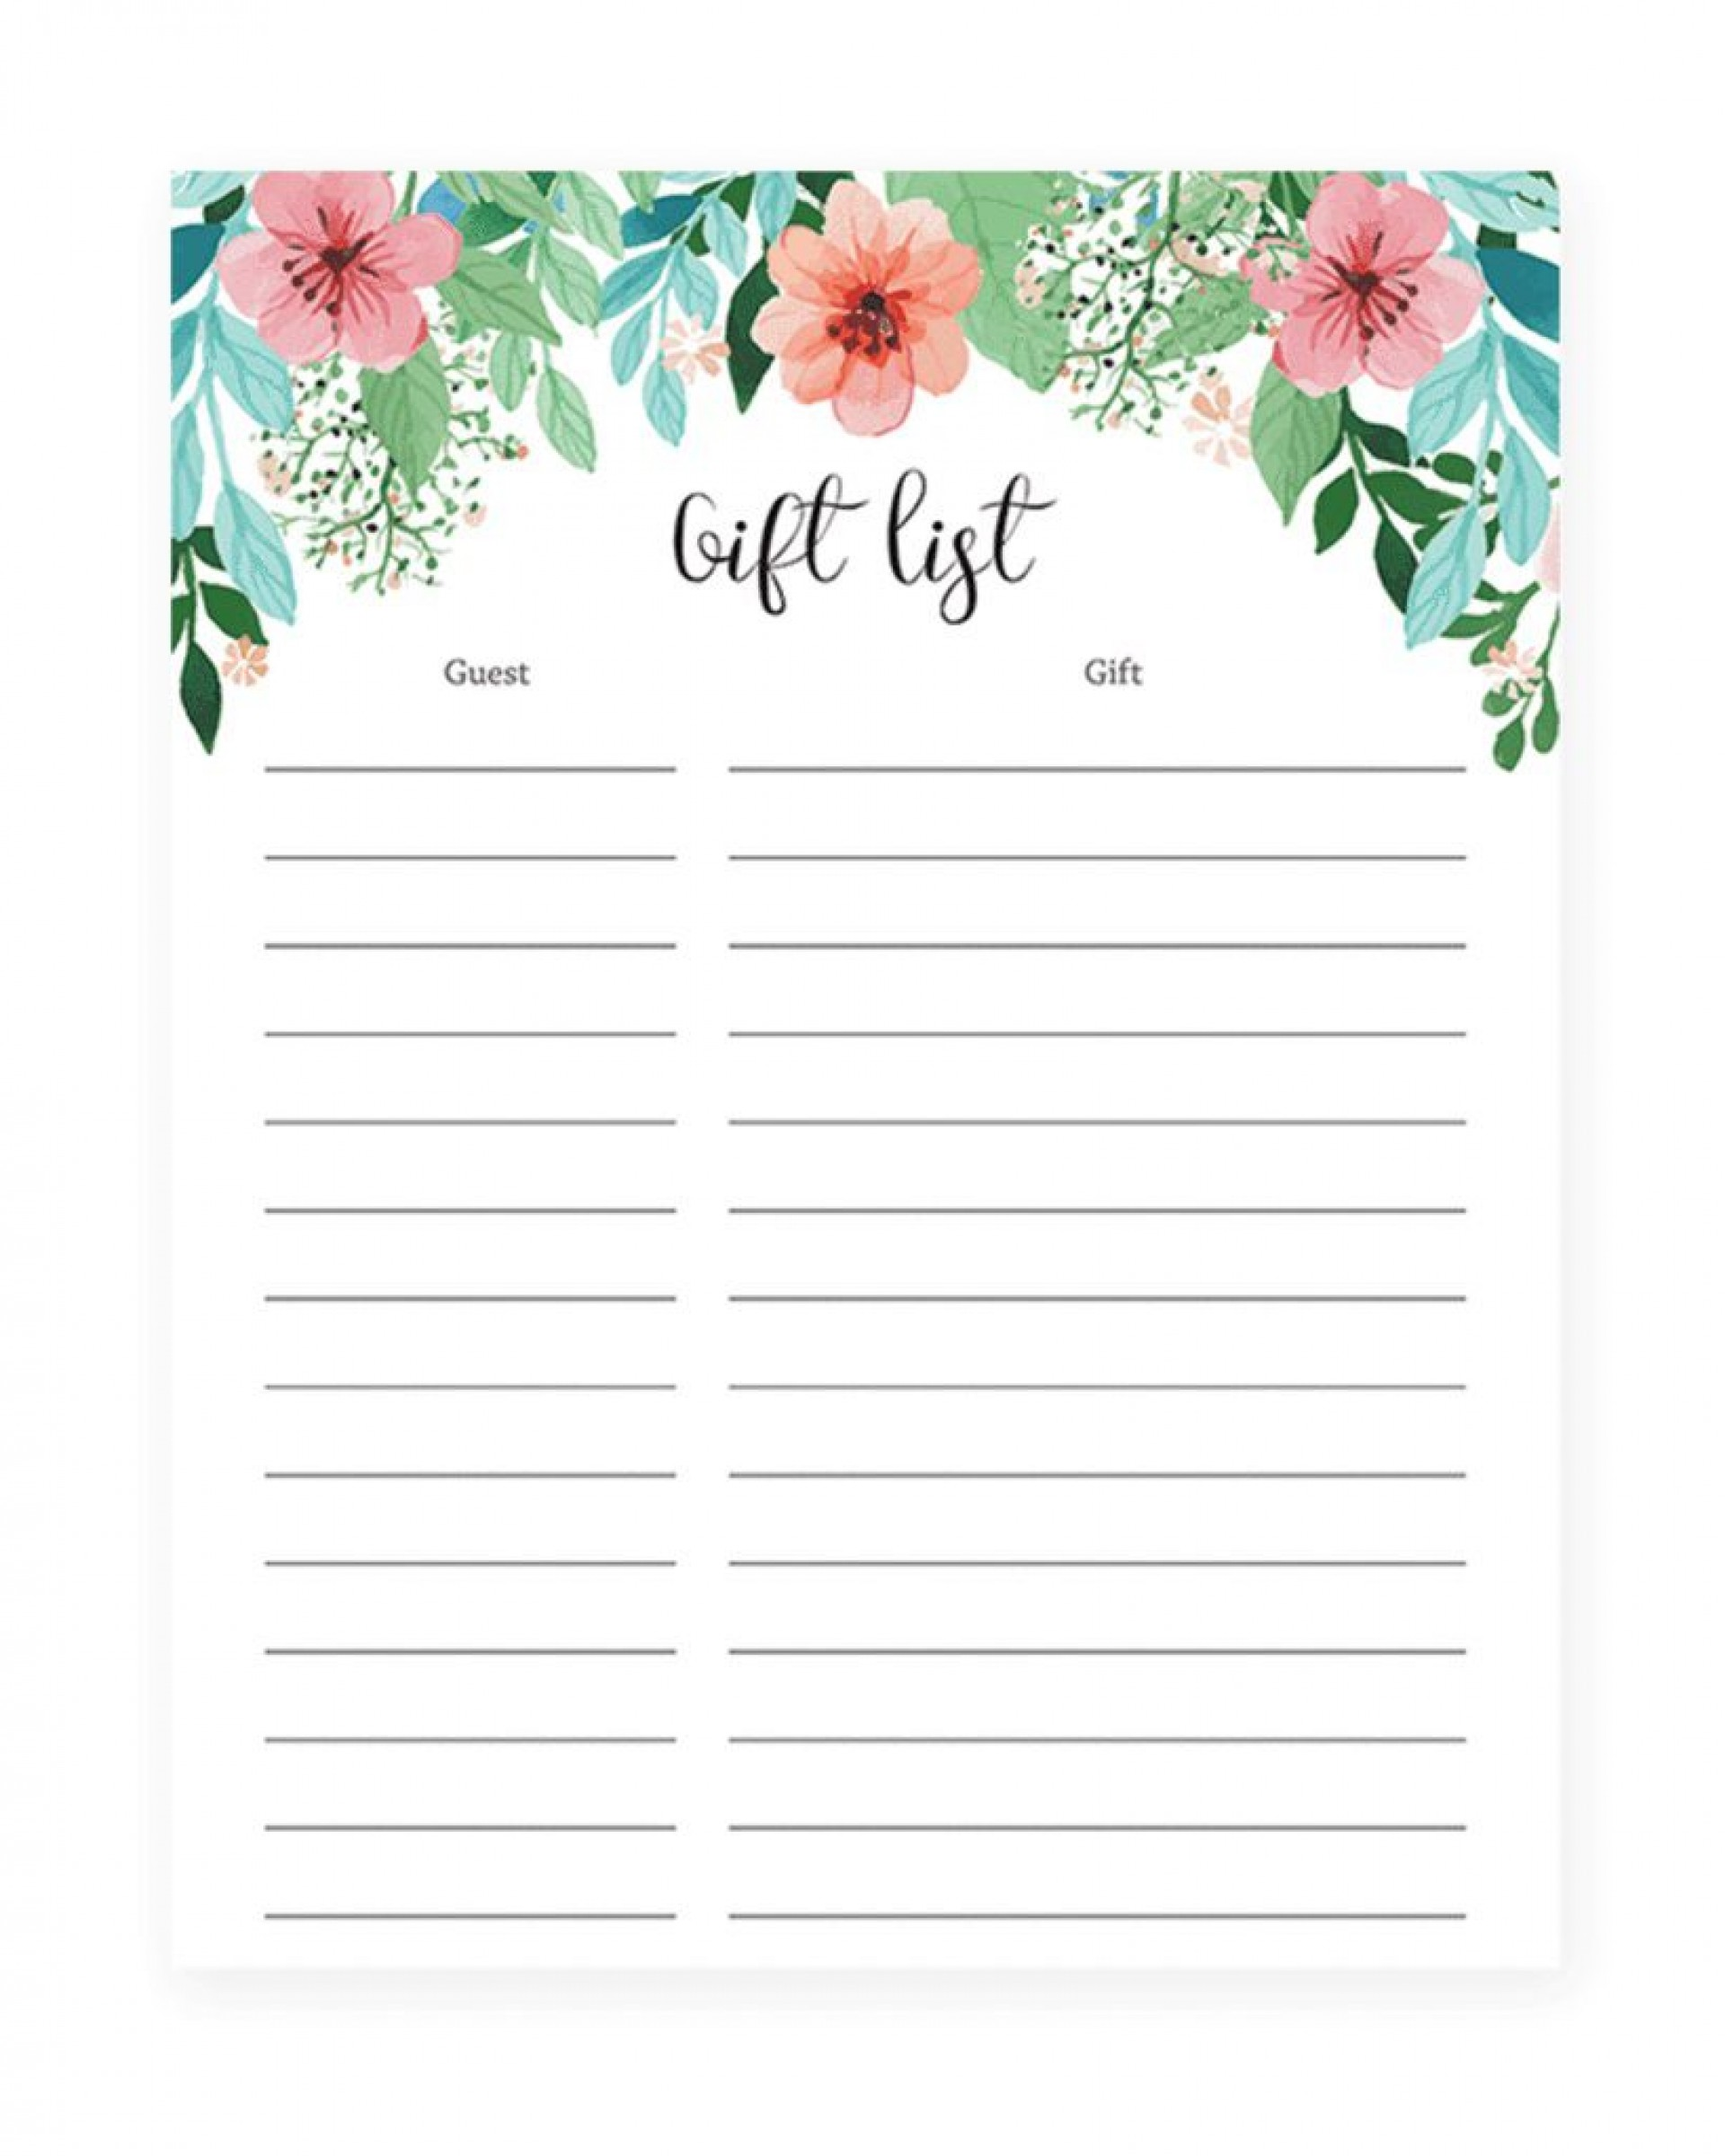 003 Wondrou Baby Shower Guest List Template Inspiration  Free Gift1920